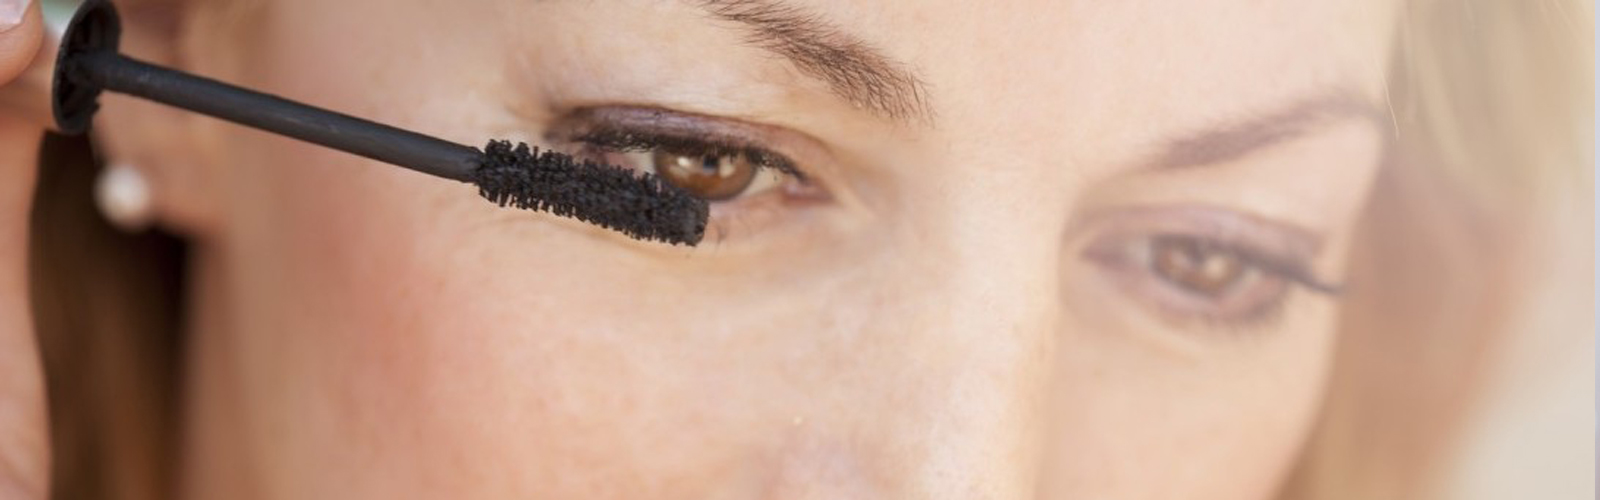 HOW MAKEUP CAN AFFECT YOUR EYES